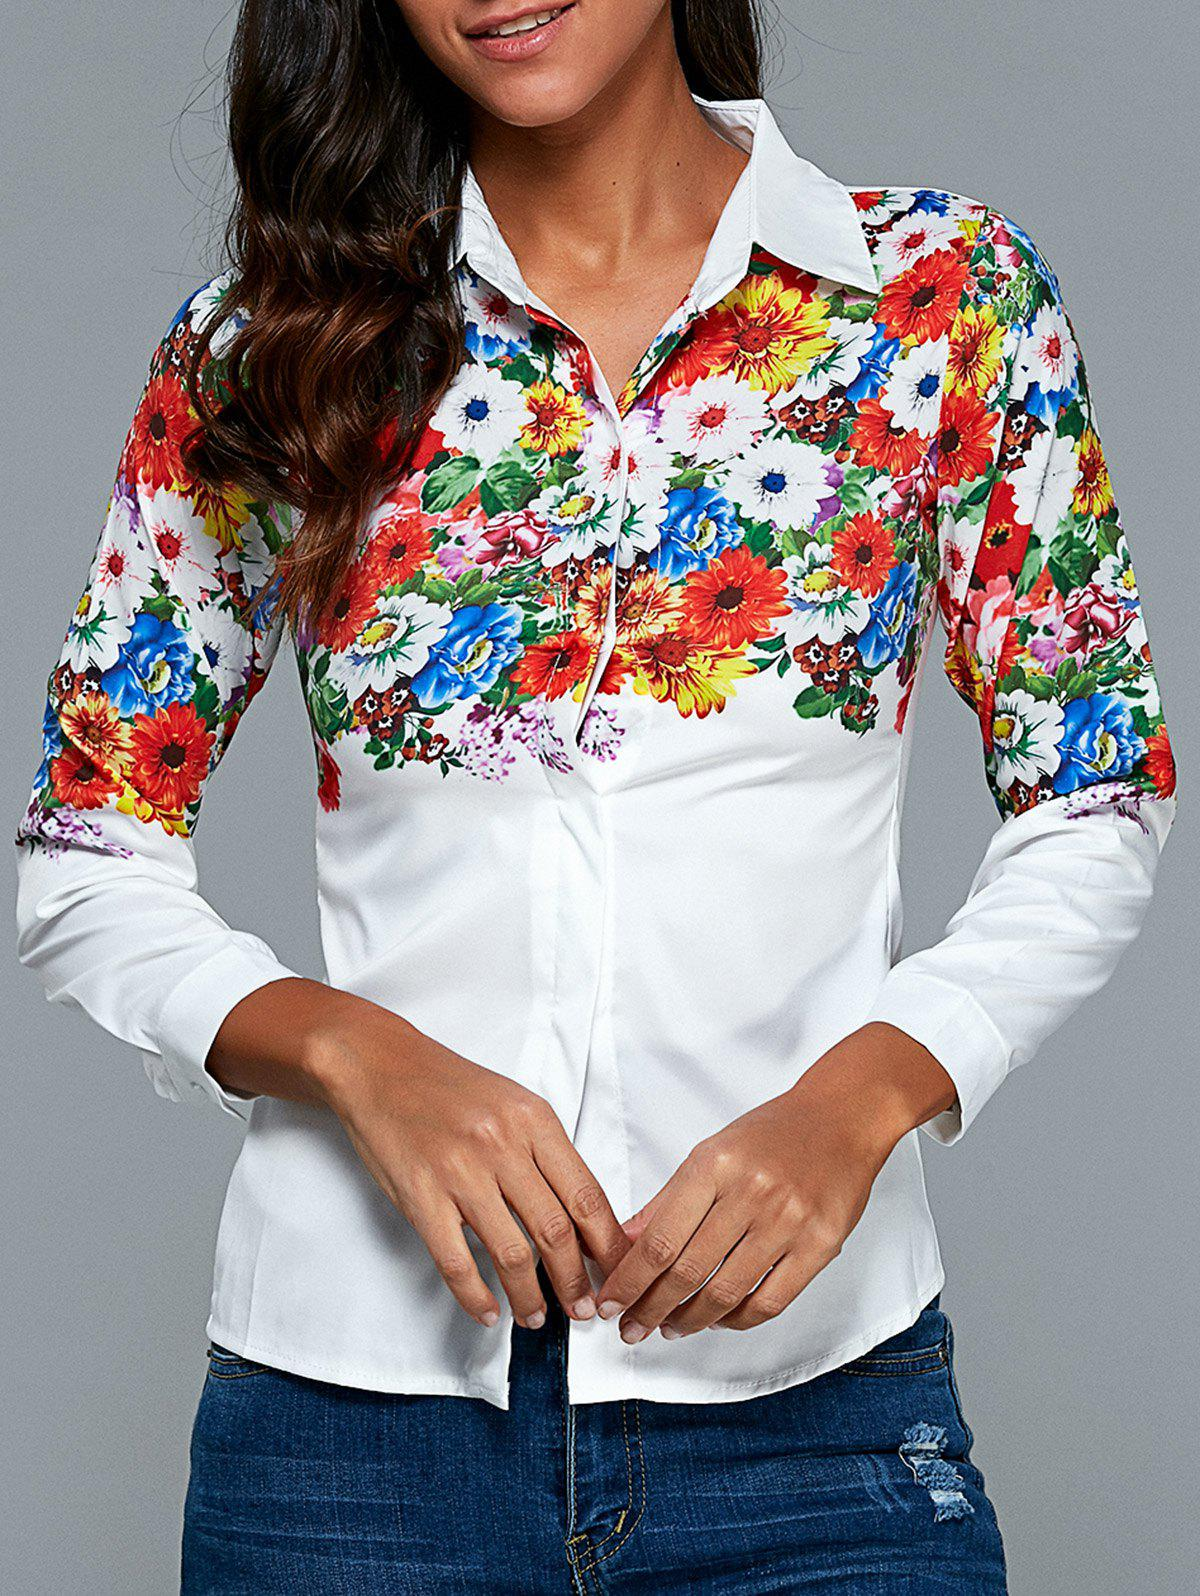 Bright colored floral pattern shirt white xl in blouses for Neon colored t shirts wholesale